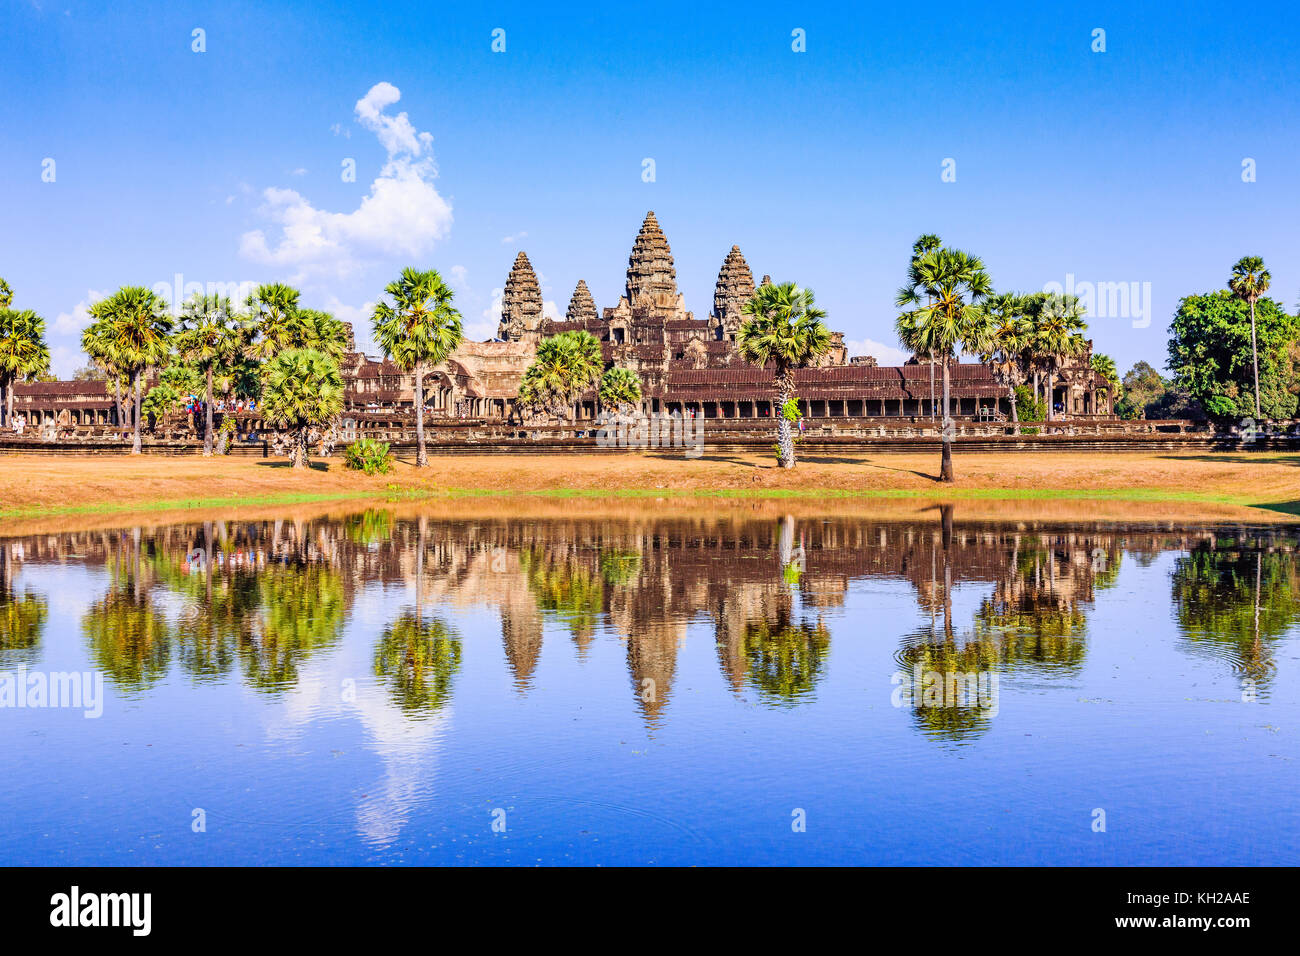 Angkor Wat, Cambodia. View from across the lake. - Stock Image